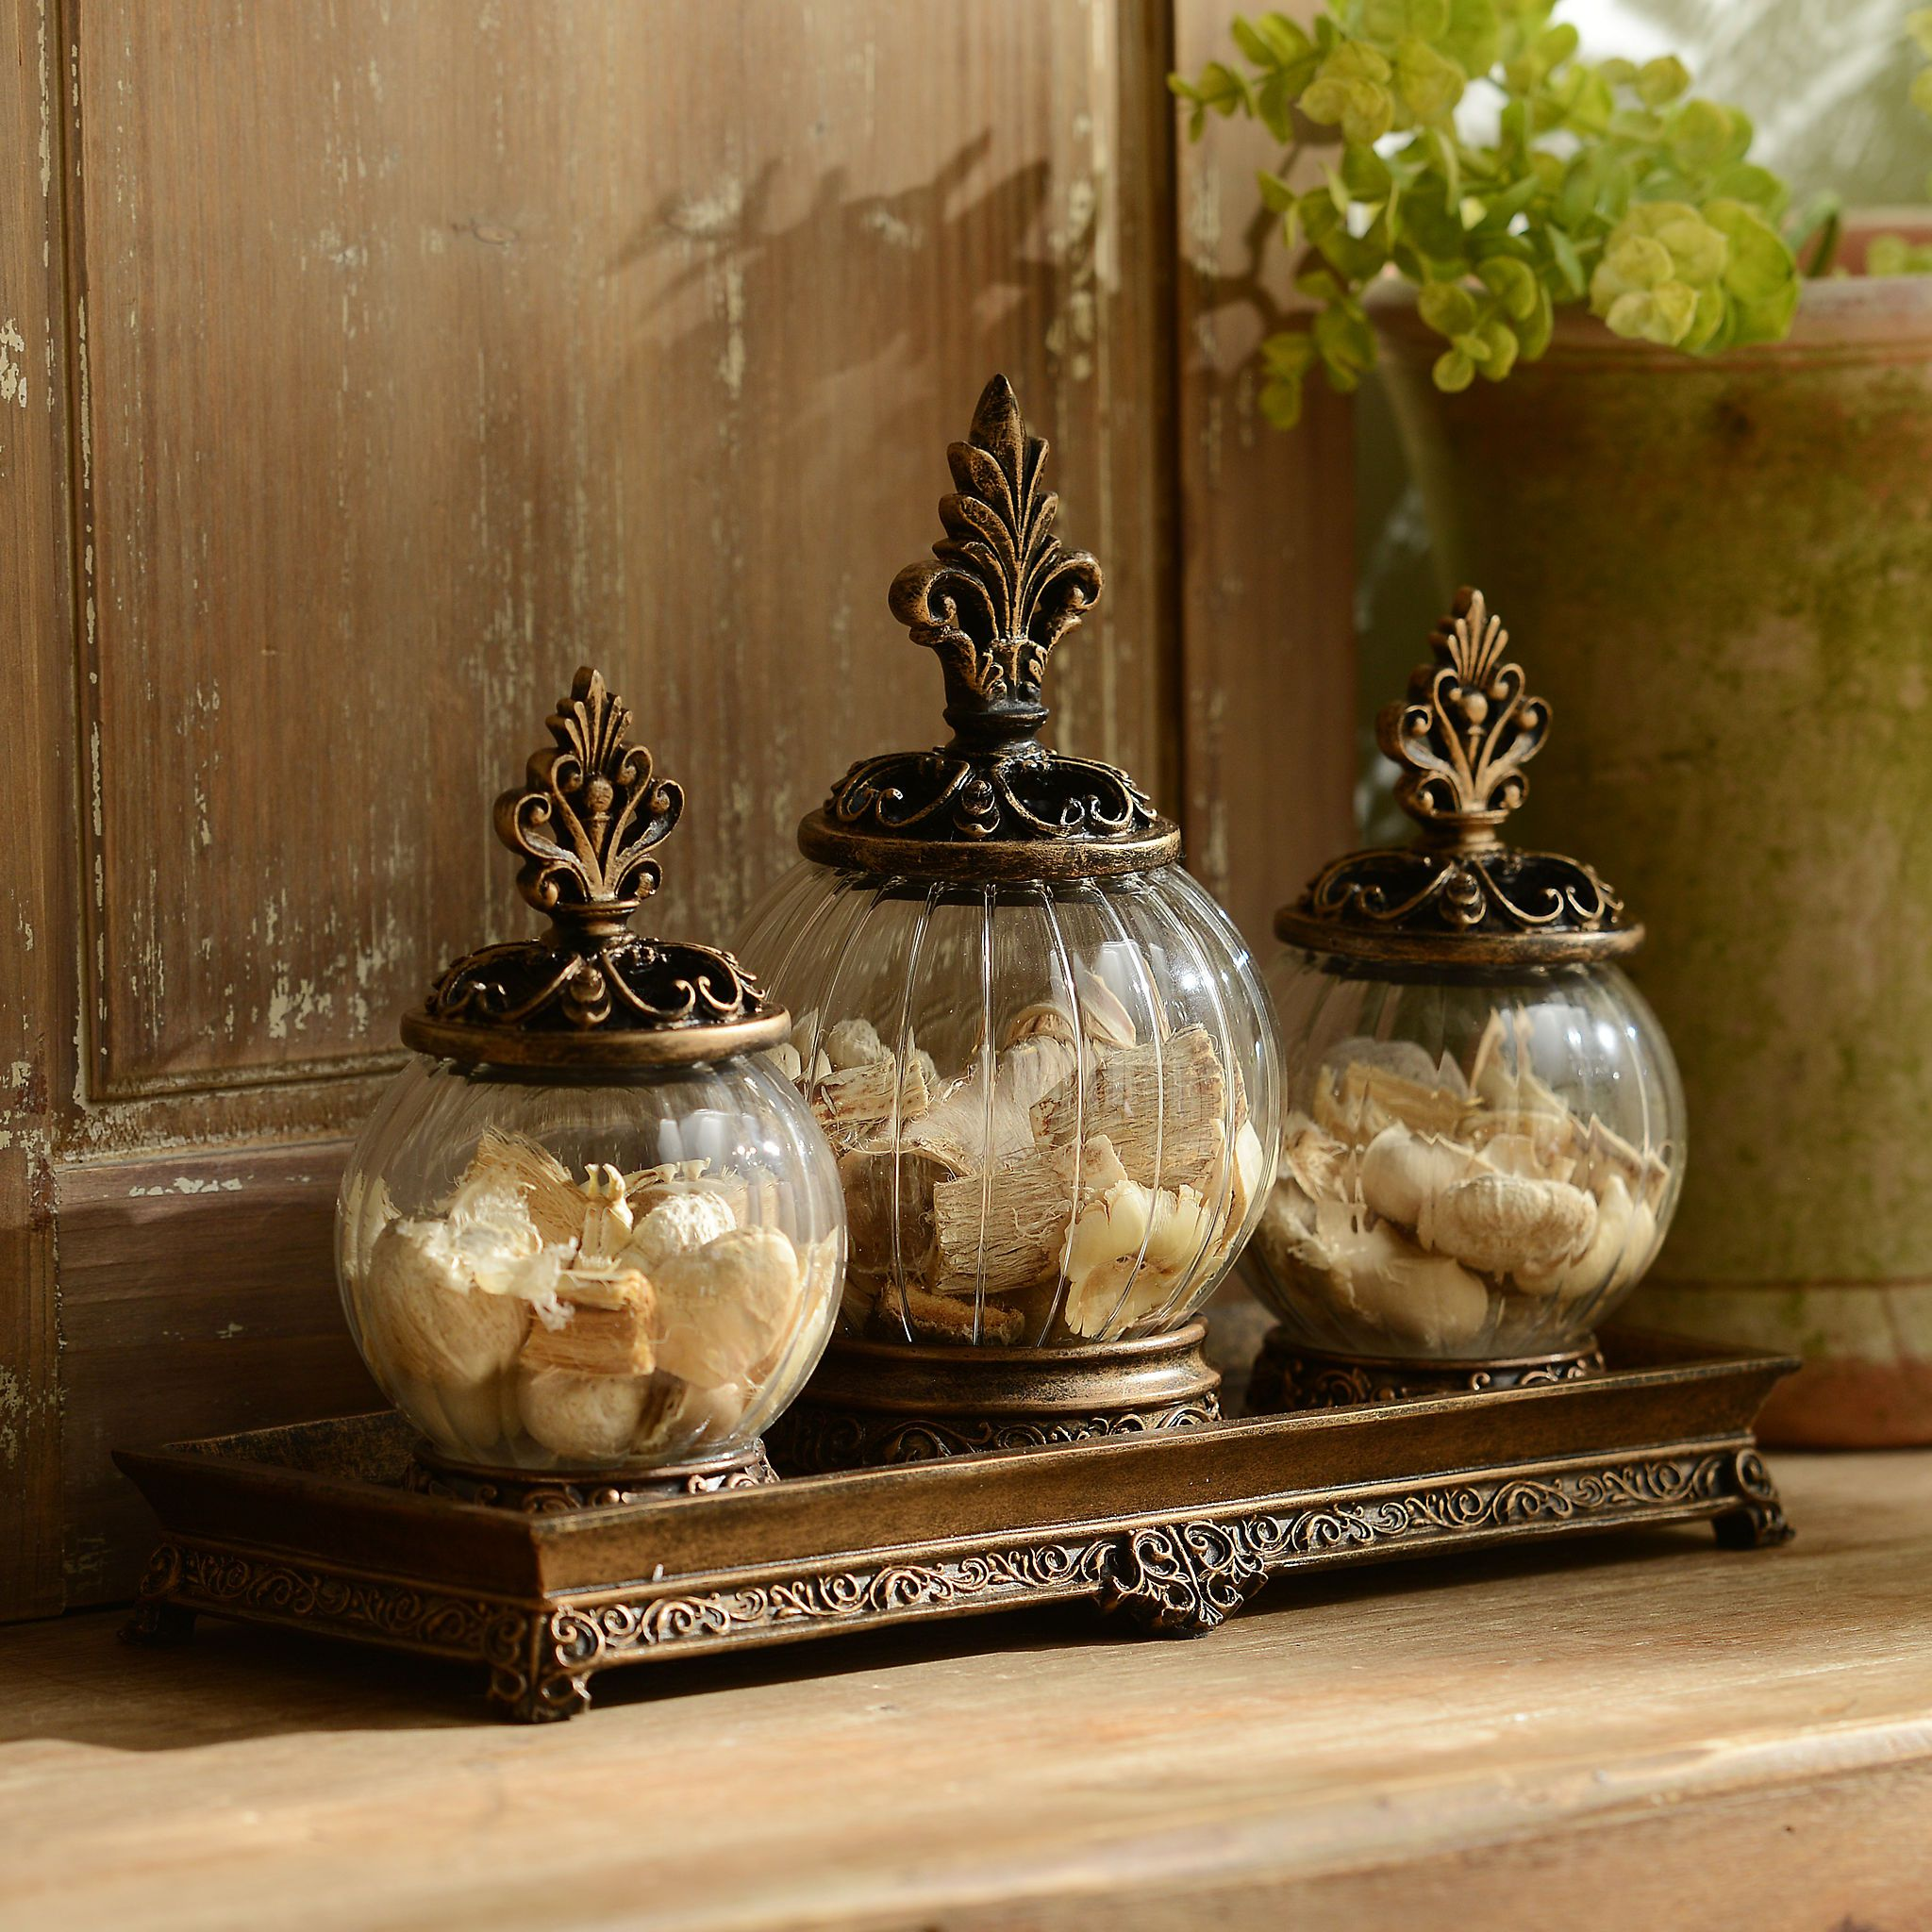 Decorative Accents For Home: Product Details Gold Filigree Glass Jar, Set Of 3 In 2019